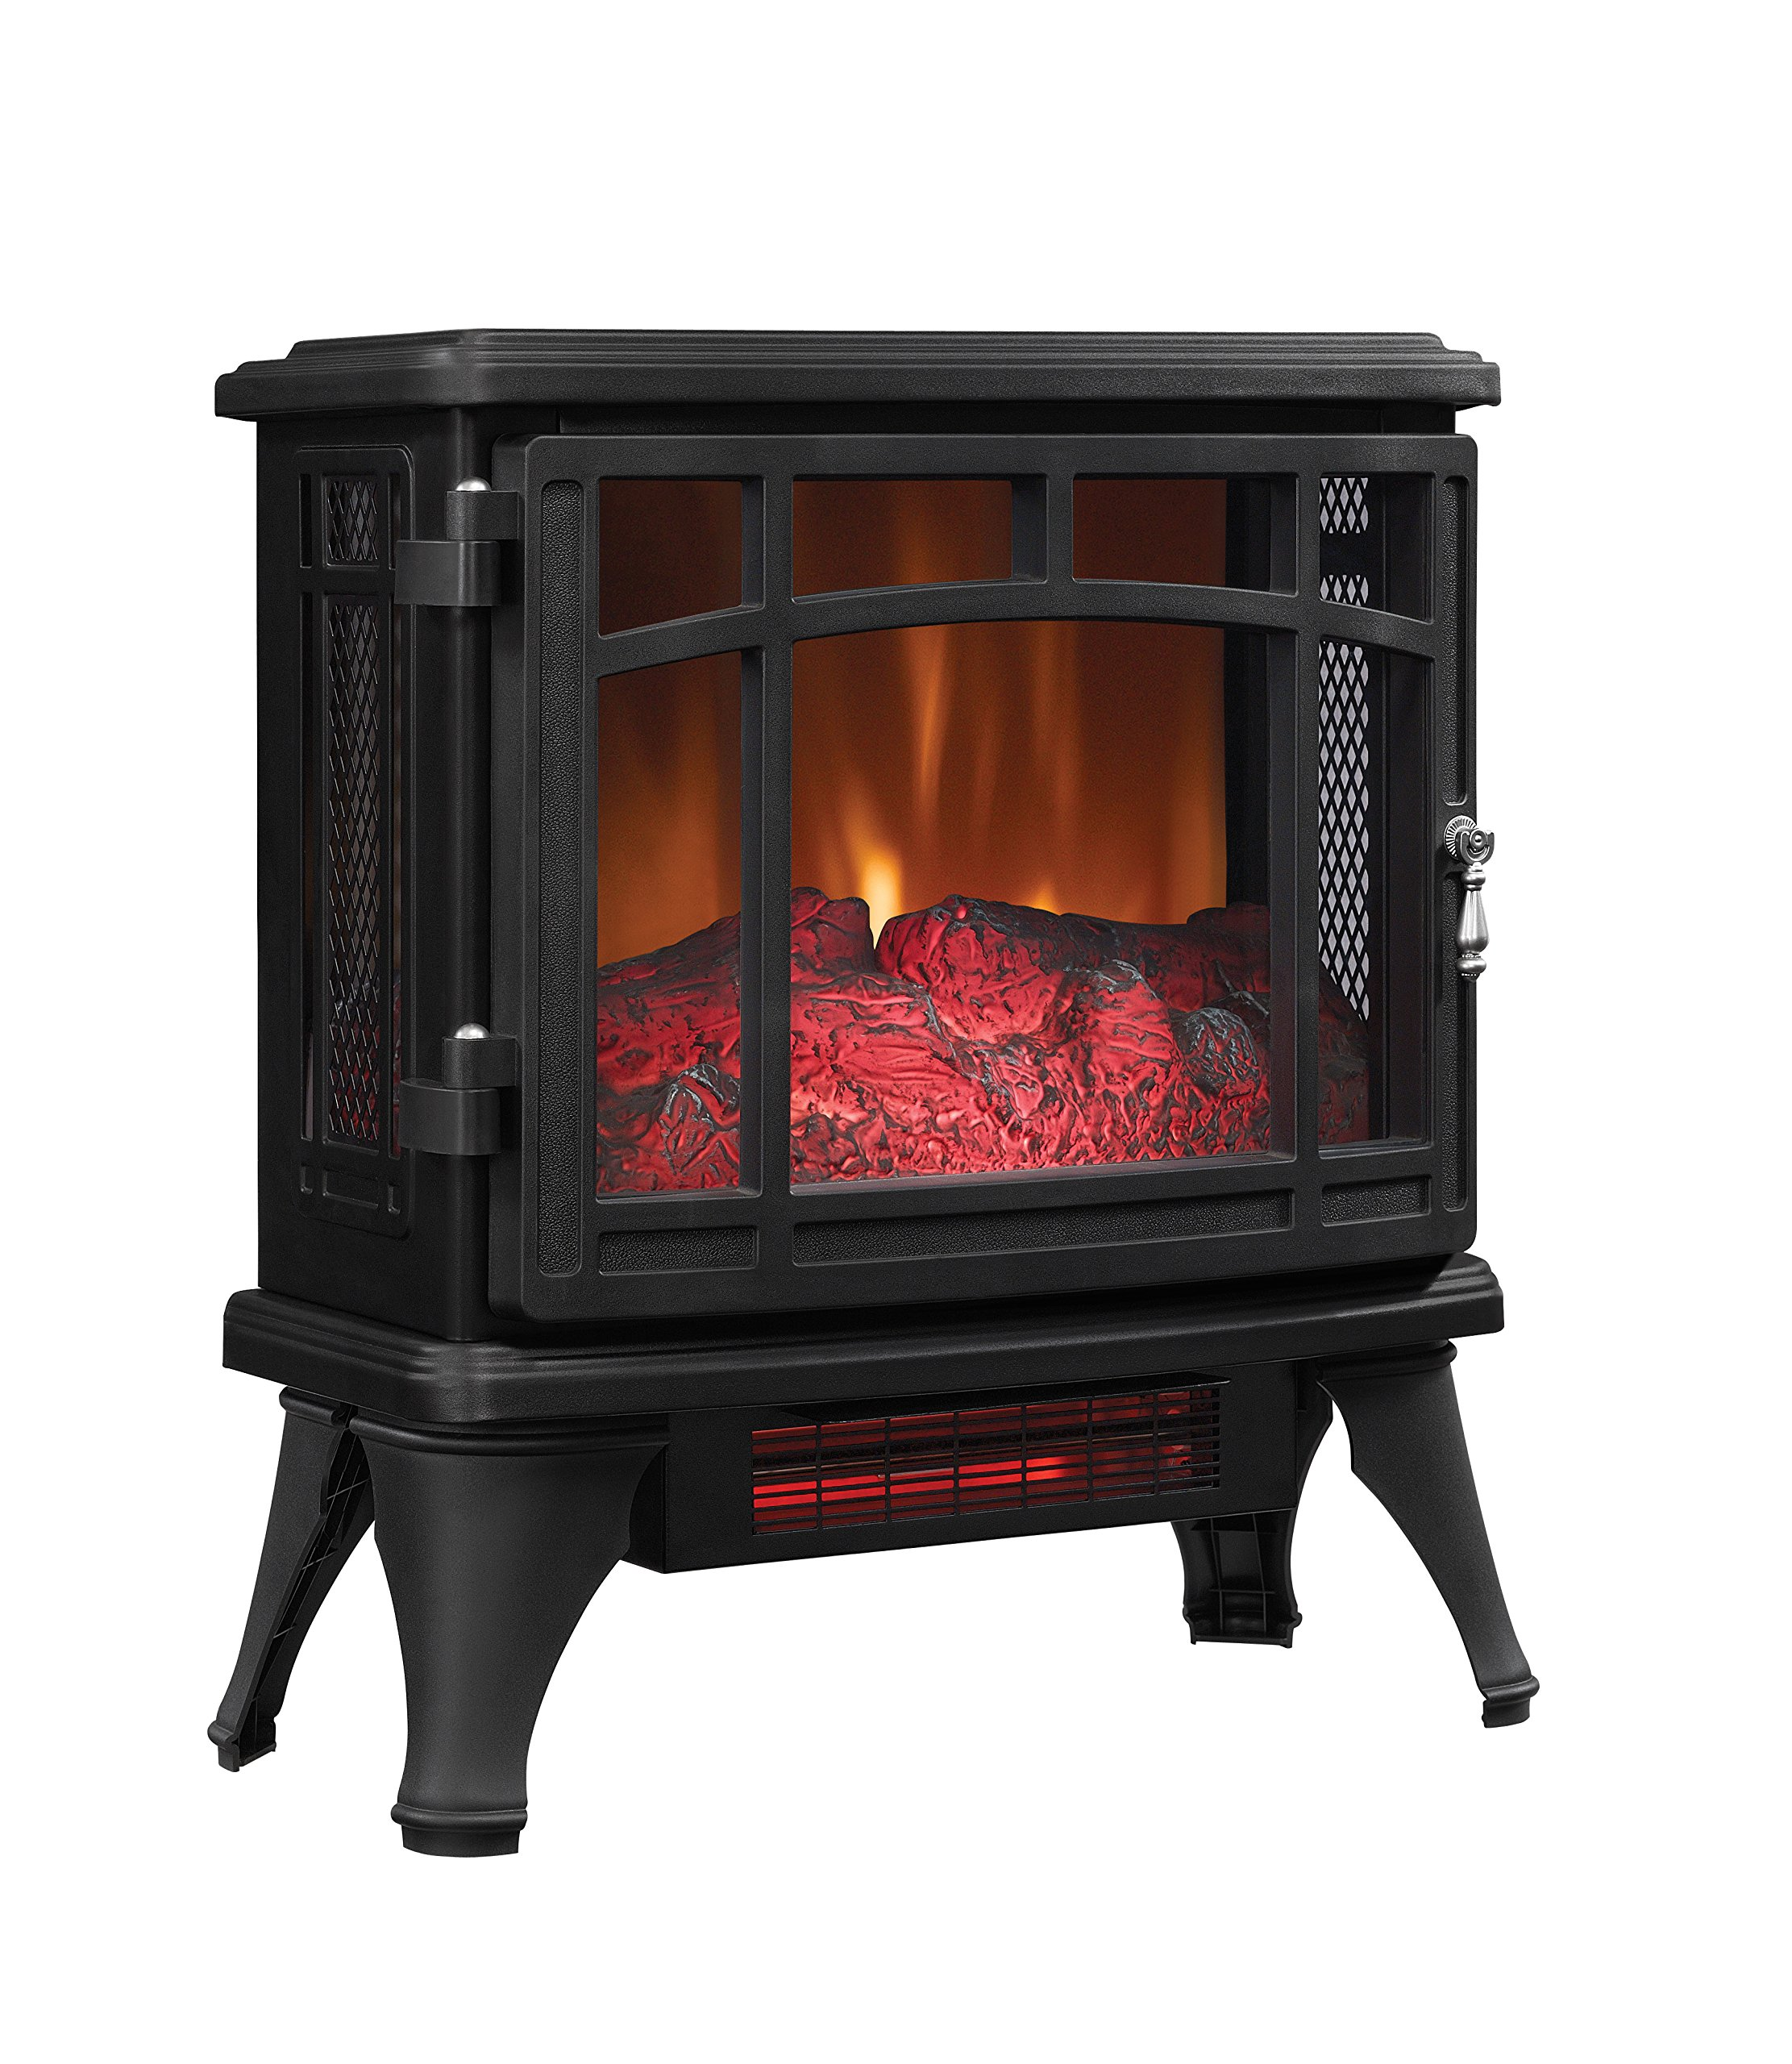 garden blvd overstock free james faux electric insert reese home today product fireplace corner lochner convertible shipping amazon oliver stone harper infrared white